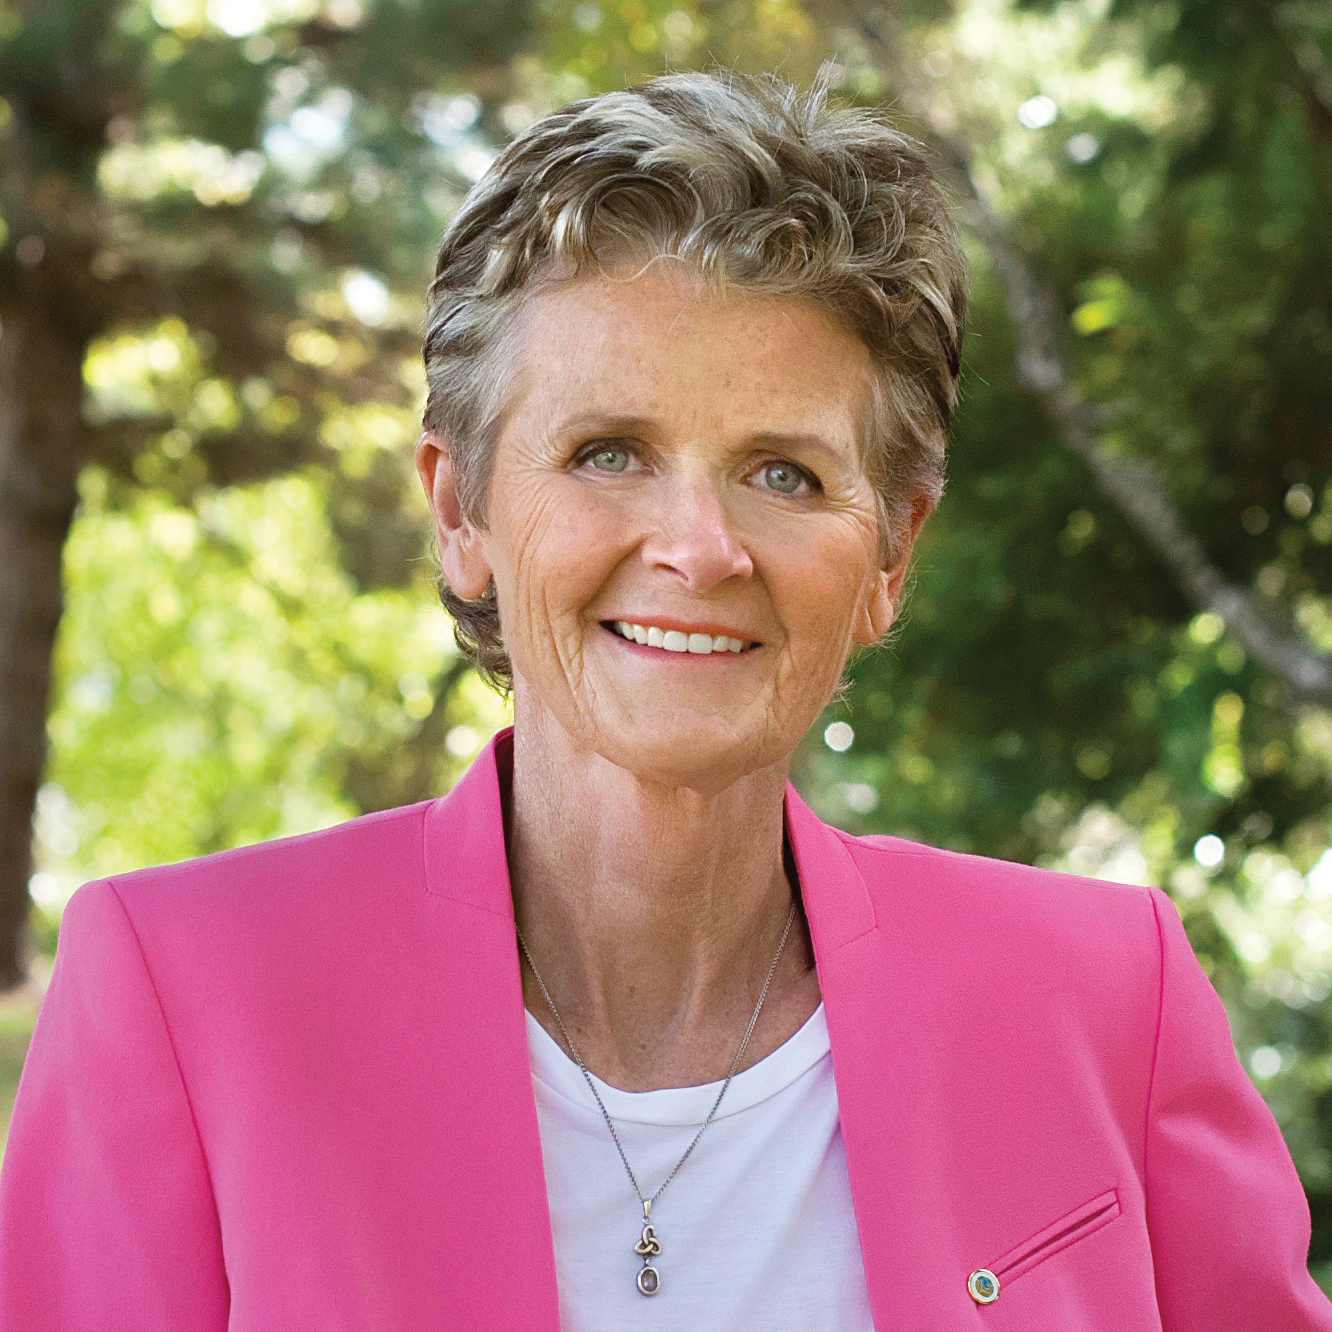 Humboldt County Supervisor Estelle Fennell will speak at the Shelter Cove Community Clubhouse from 5-7 p.m. April 16.